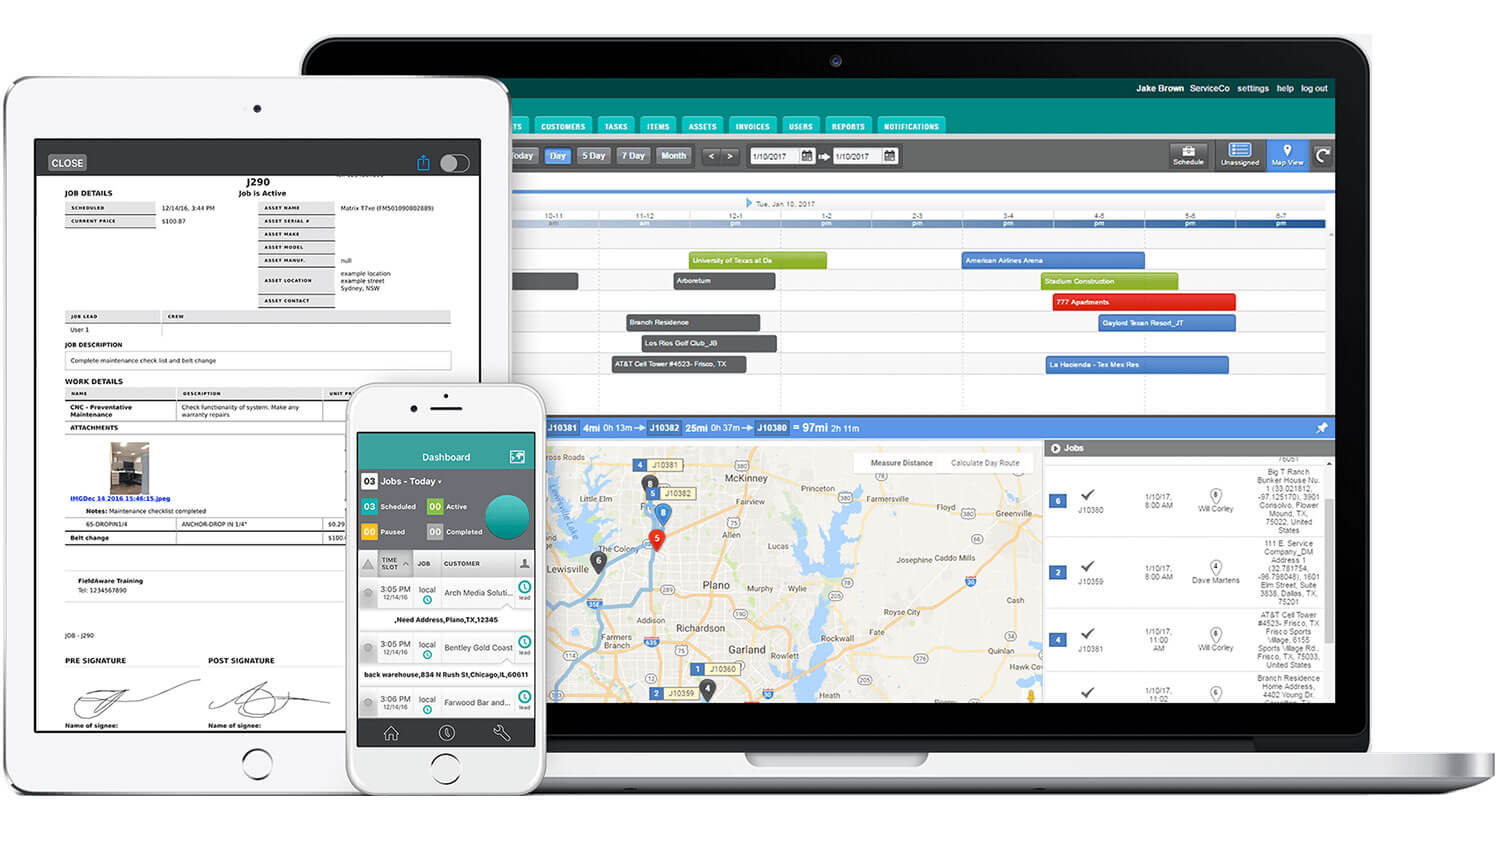 Global Property Management Software  Market Analysis 2018 – 2026 and Future Growth upto 2026